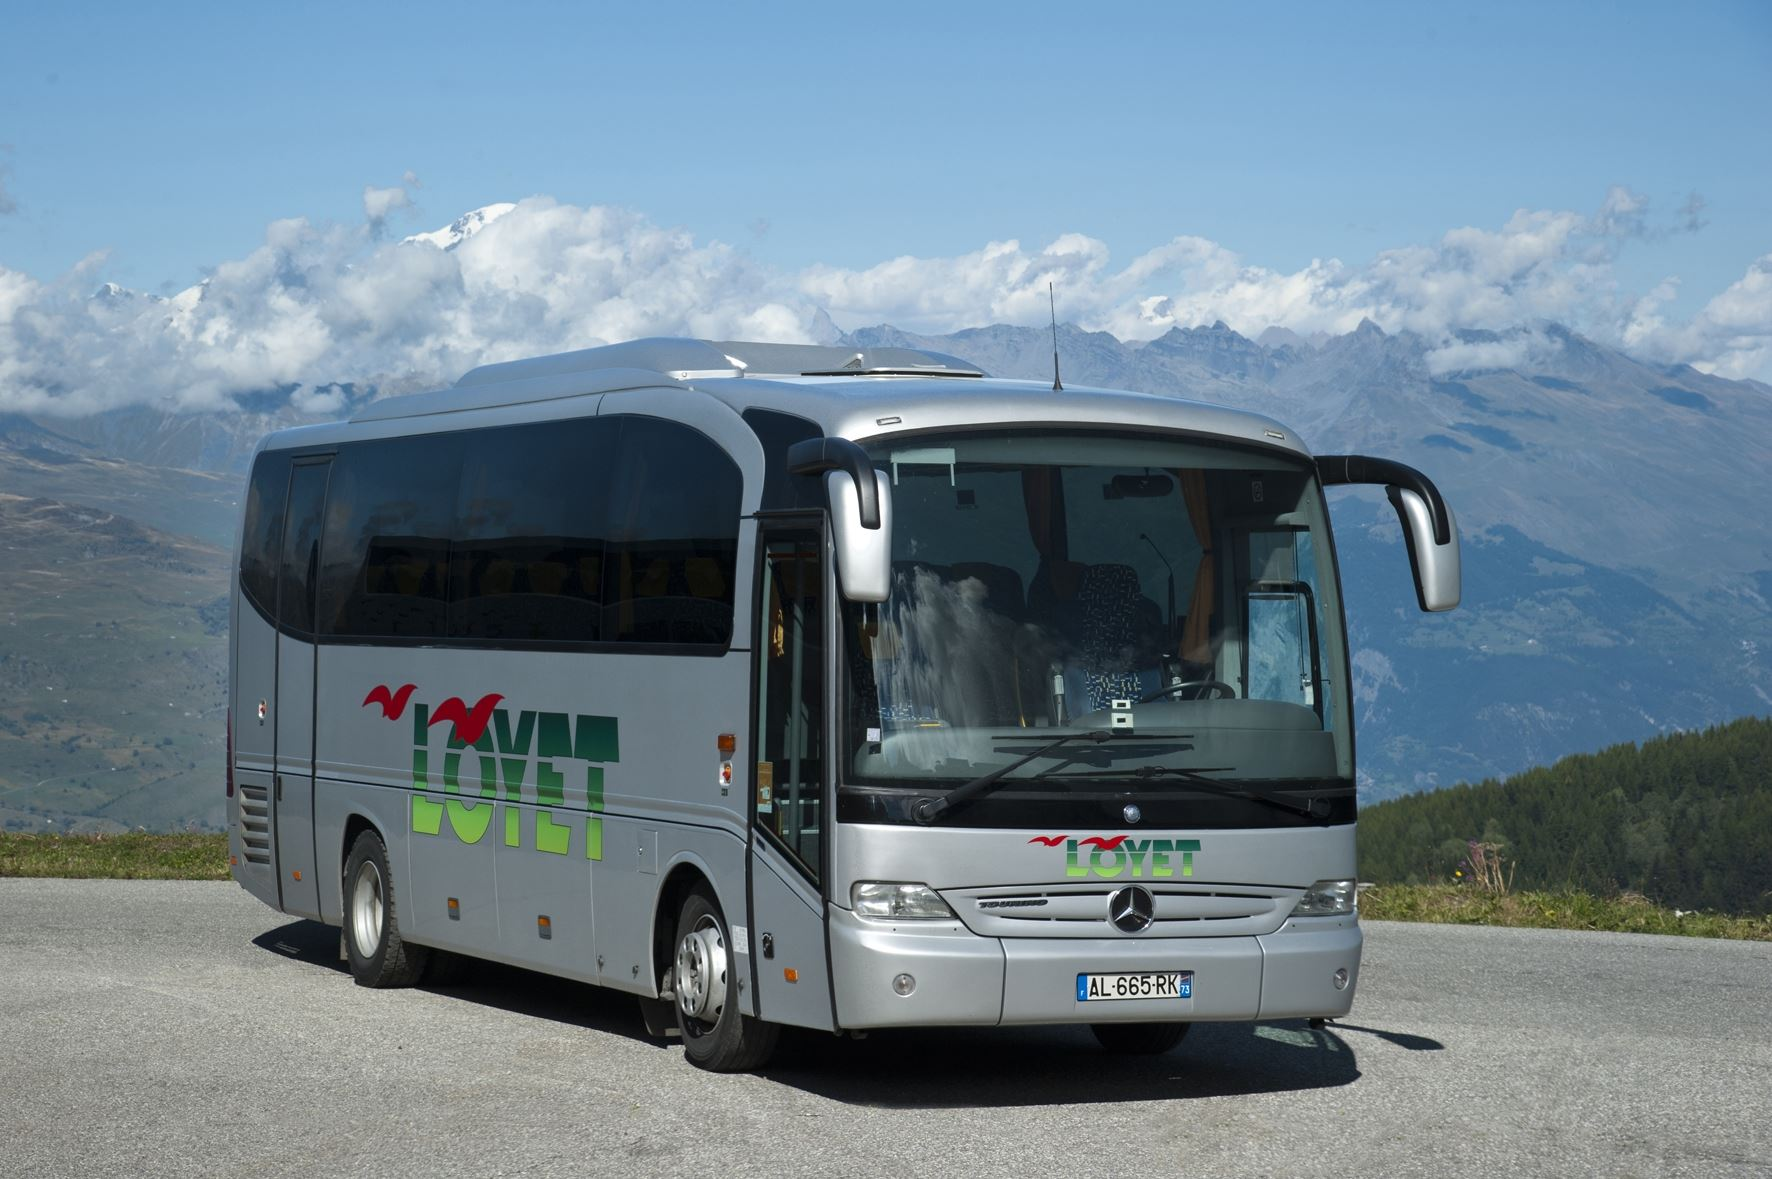 SUNDAY BUS TRANSFER RETURN TICKET - FROM GENEVA AIRPORT TO VAL THORENS - 99€ PER TICKET